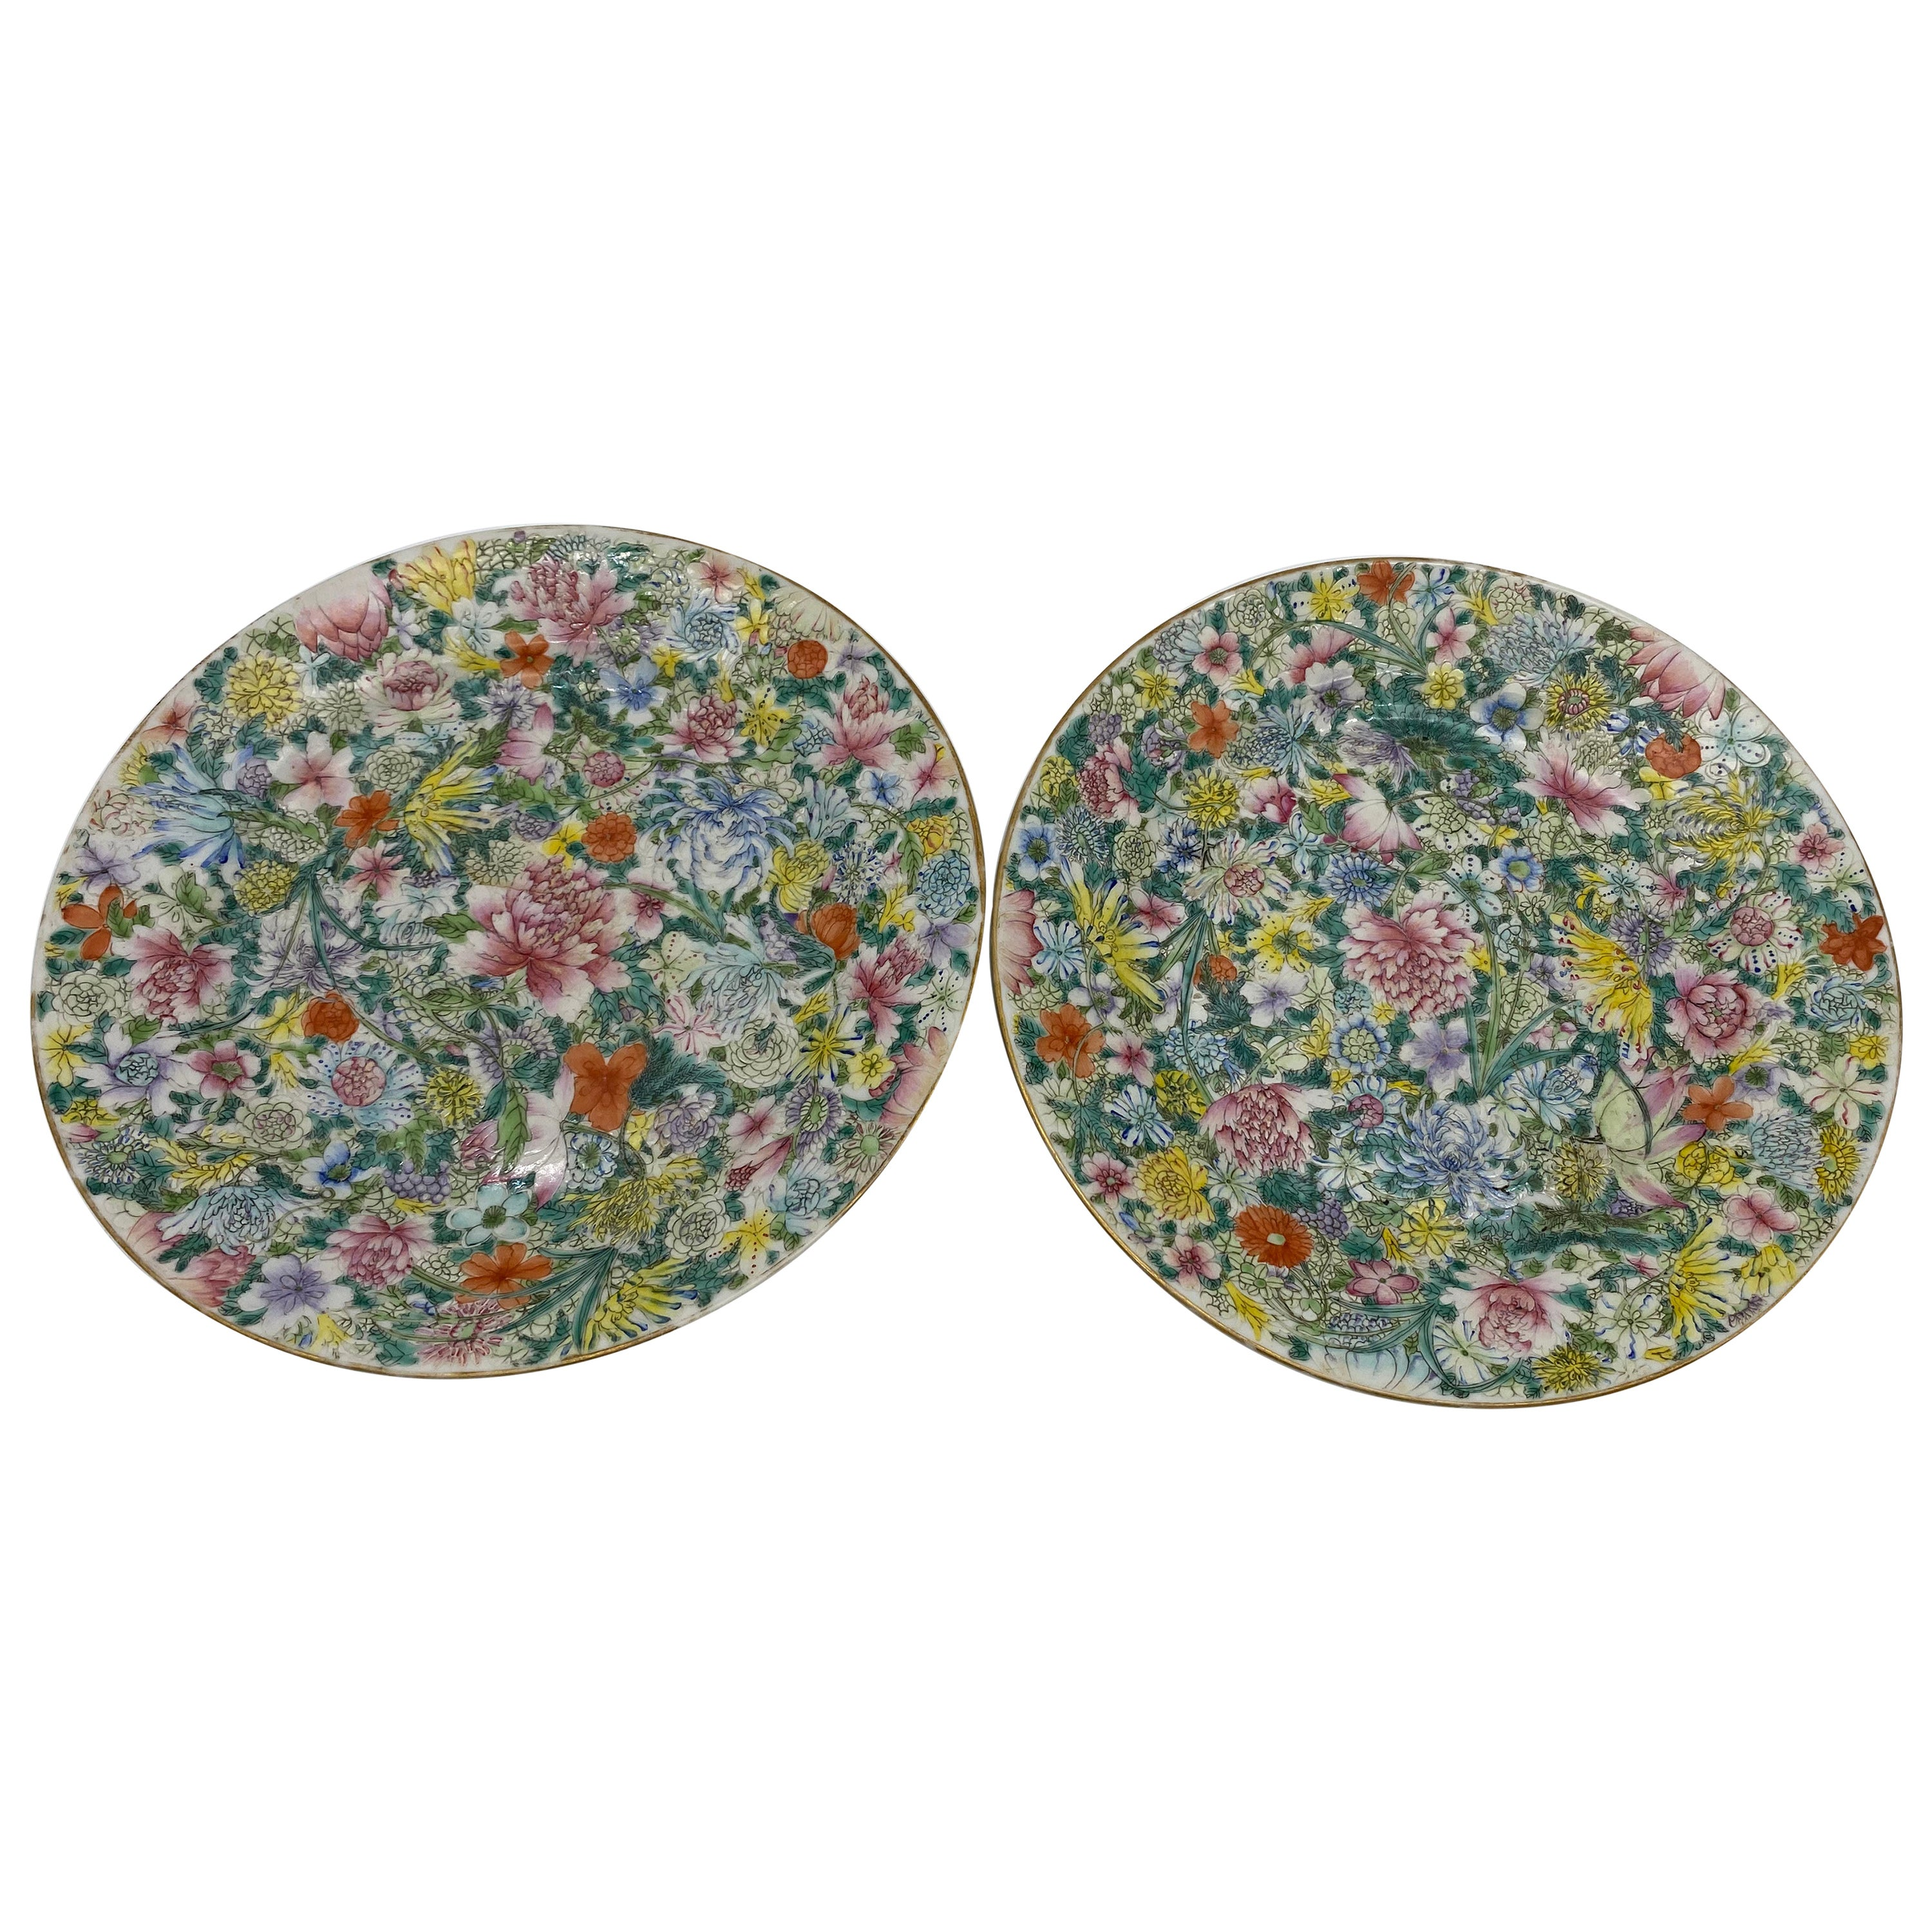 Pair of 19th Century Chinese Flower-Blossom Porcelain Plates